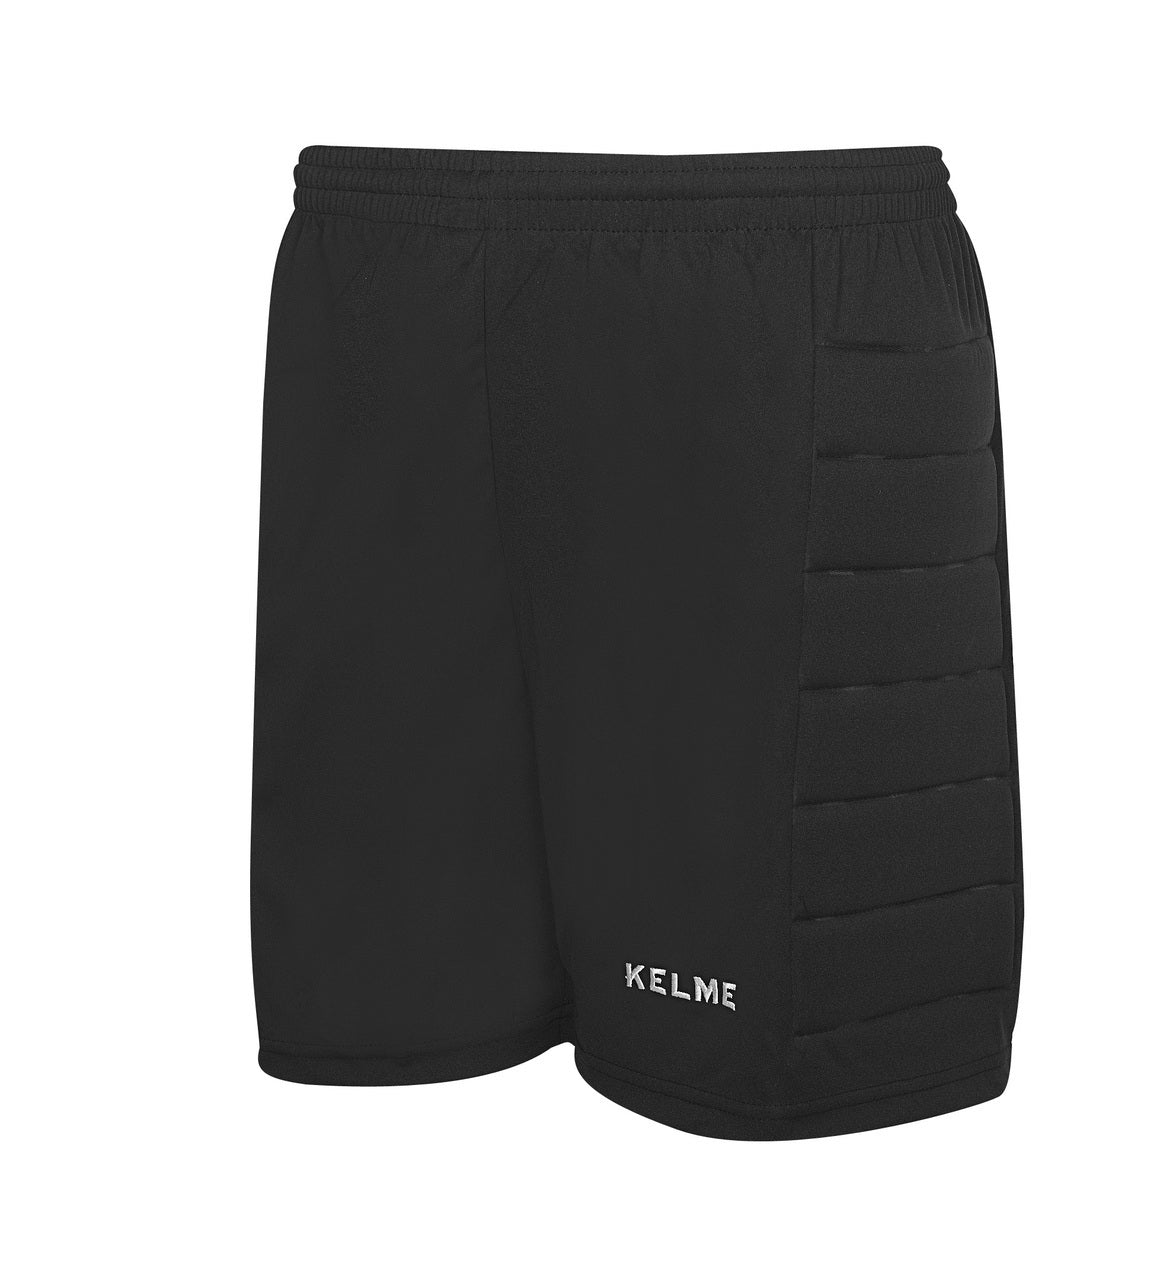 Kelme Attack Padded Goalkeeper Shorts Youth - Black